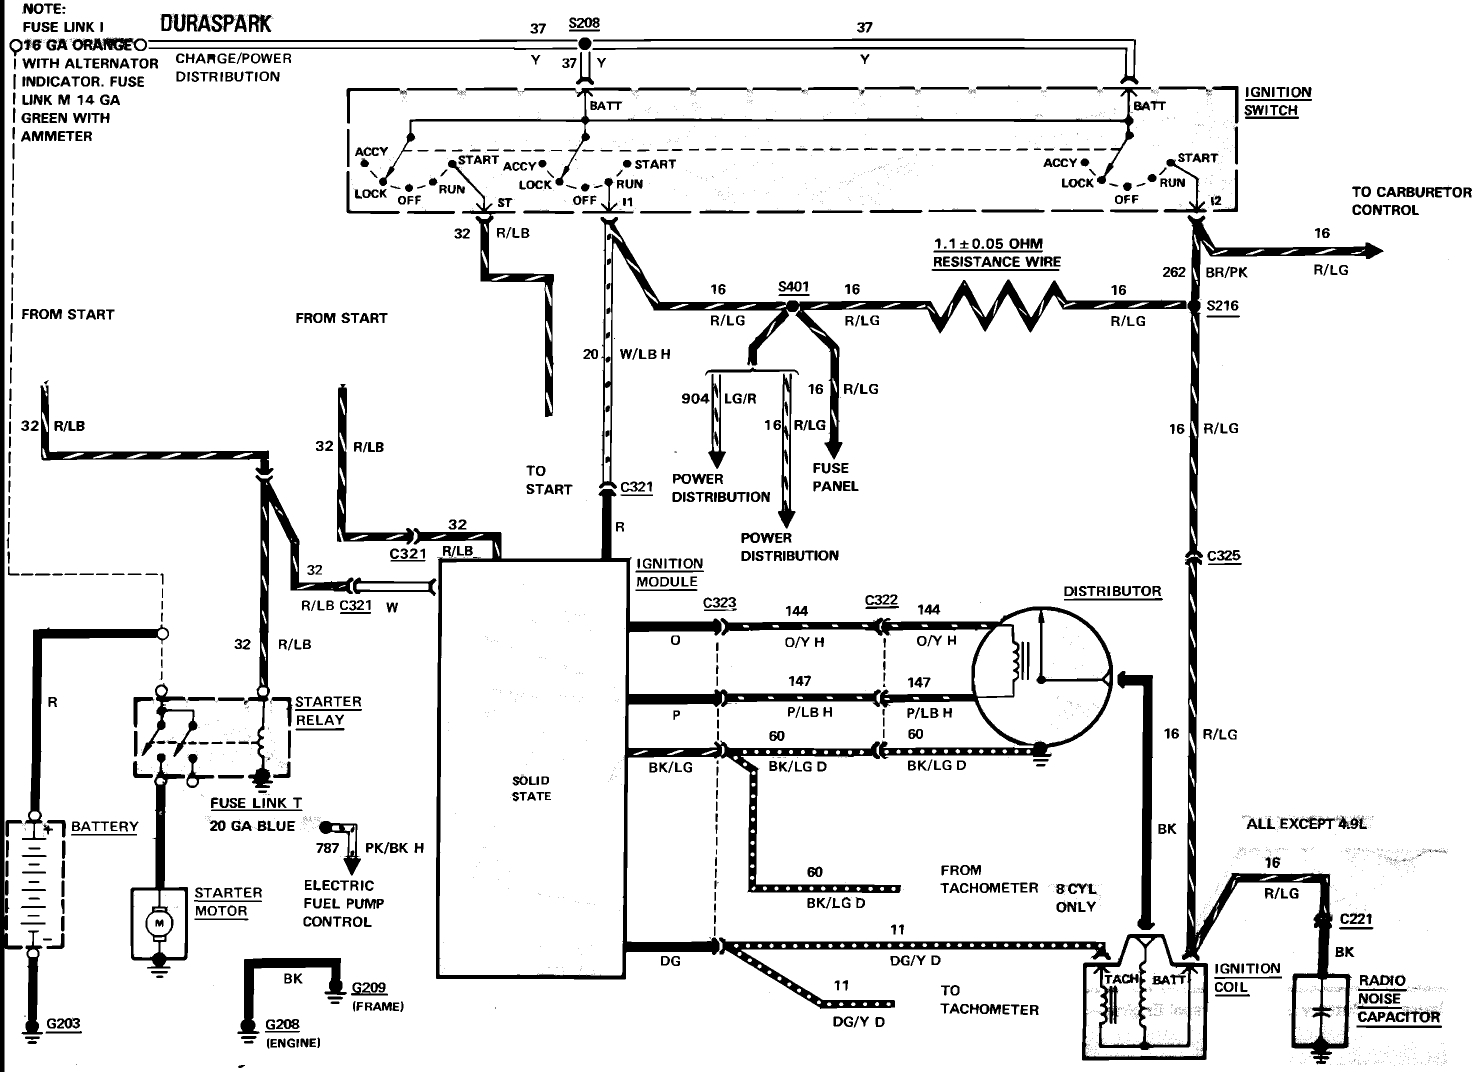 1989 ford f150 ignition wiring diagram | free wiring diagram 1988 ford ranger coil wiring diagram #10